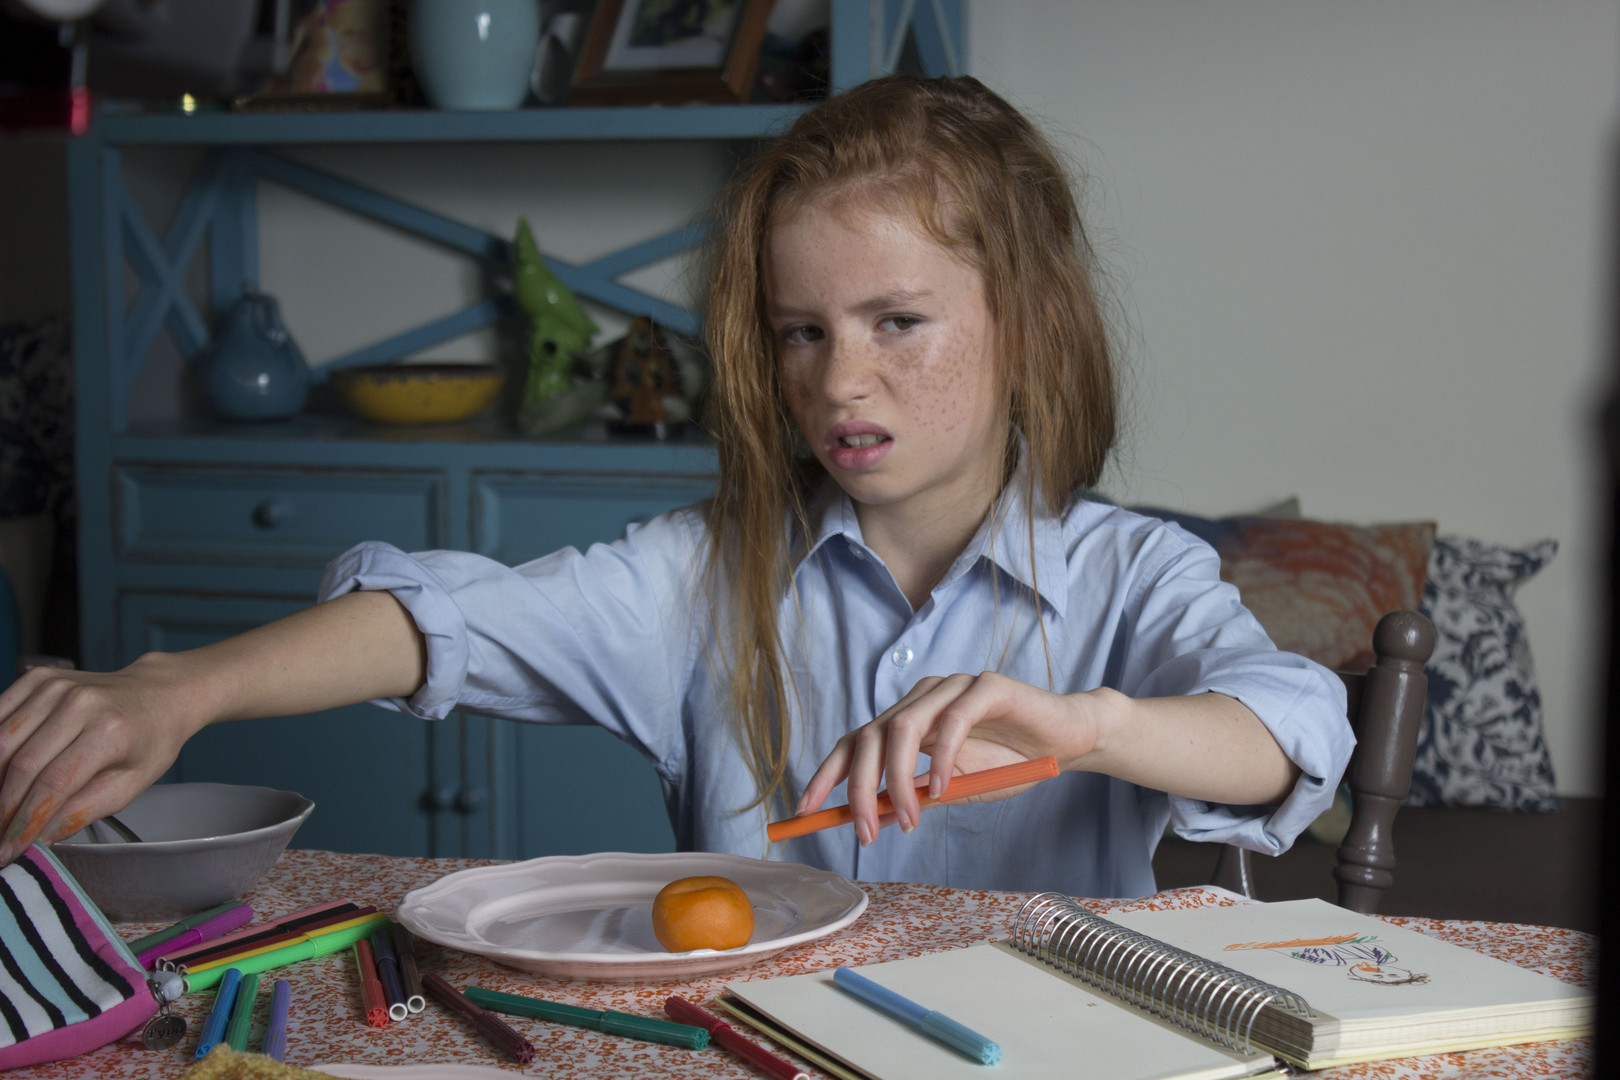 Apricot - Lara Del ArteSynopsis: Ten-year old Margaret Mary has a problem. A dentureless, dribbling problem to be exact. Will her efforts to get rid of her elderly grandmother pay off? Or will she be forced to share her house (and her parents) forever?RT: 5:002017, Australia / Maine + U.S. Premiere